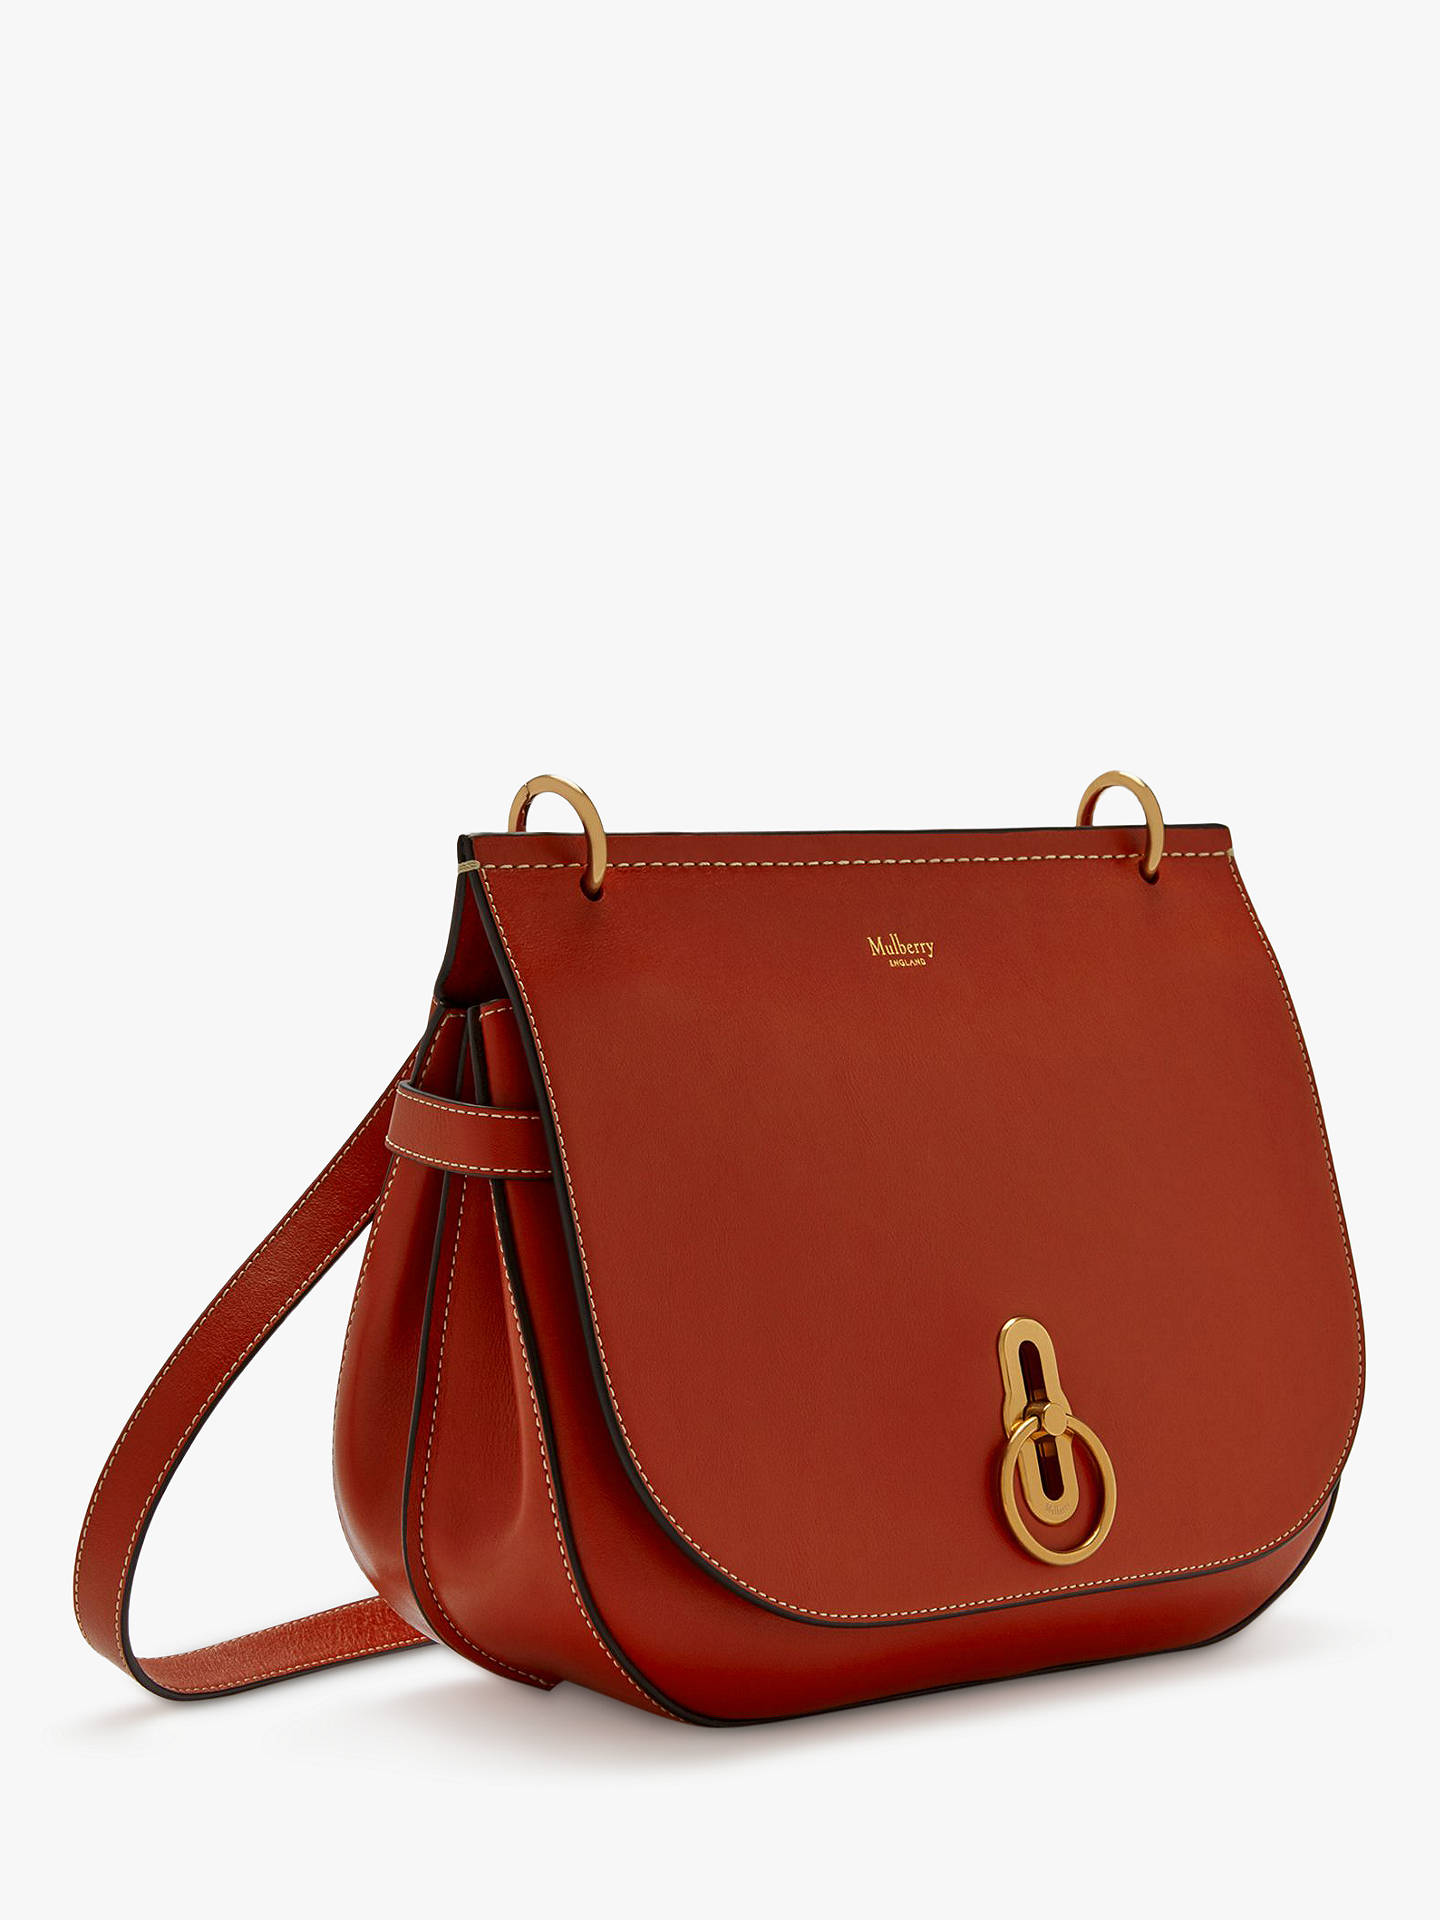 4a8f9a349410e ... Buy Mulberry Amberley Silky Calf s Leather Satchel Bag